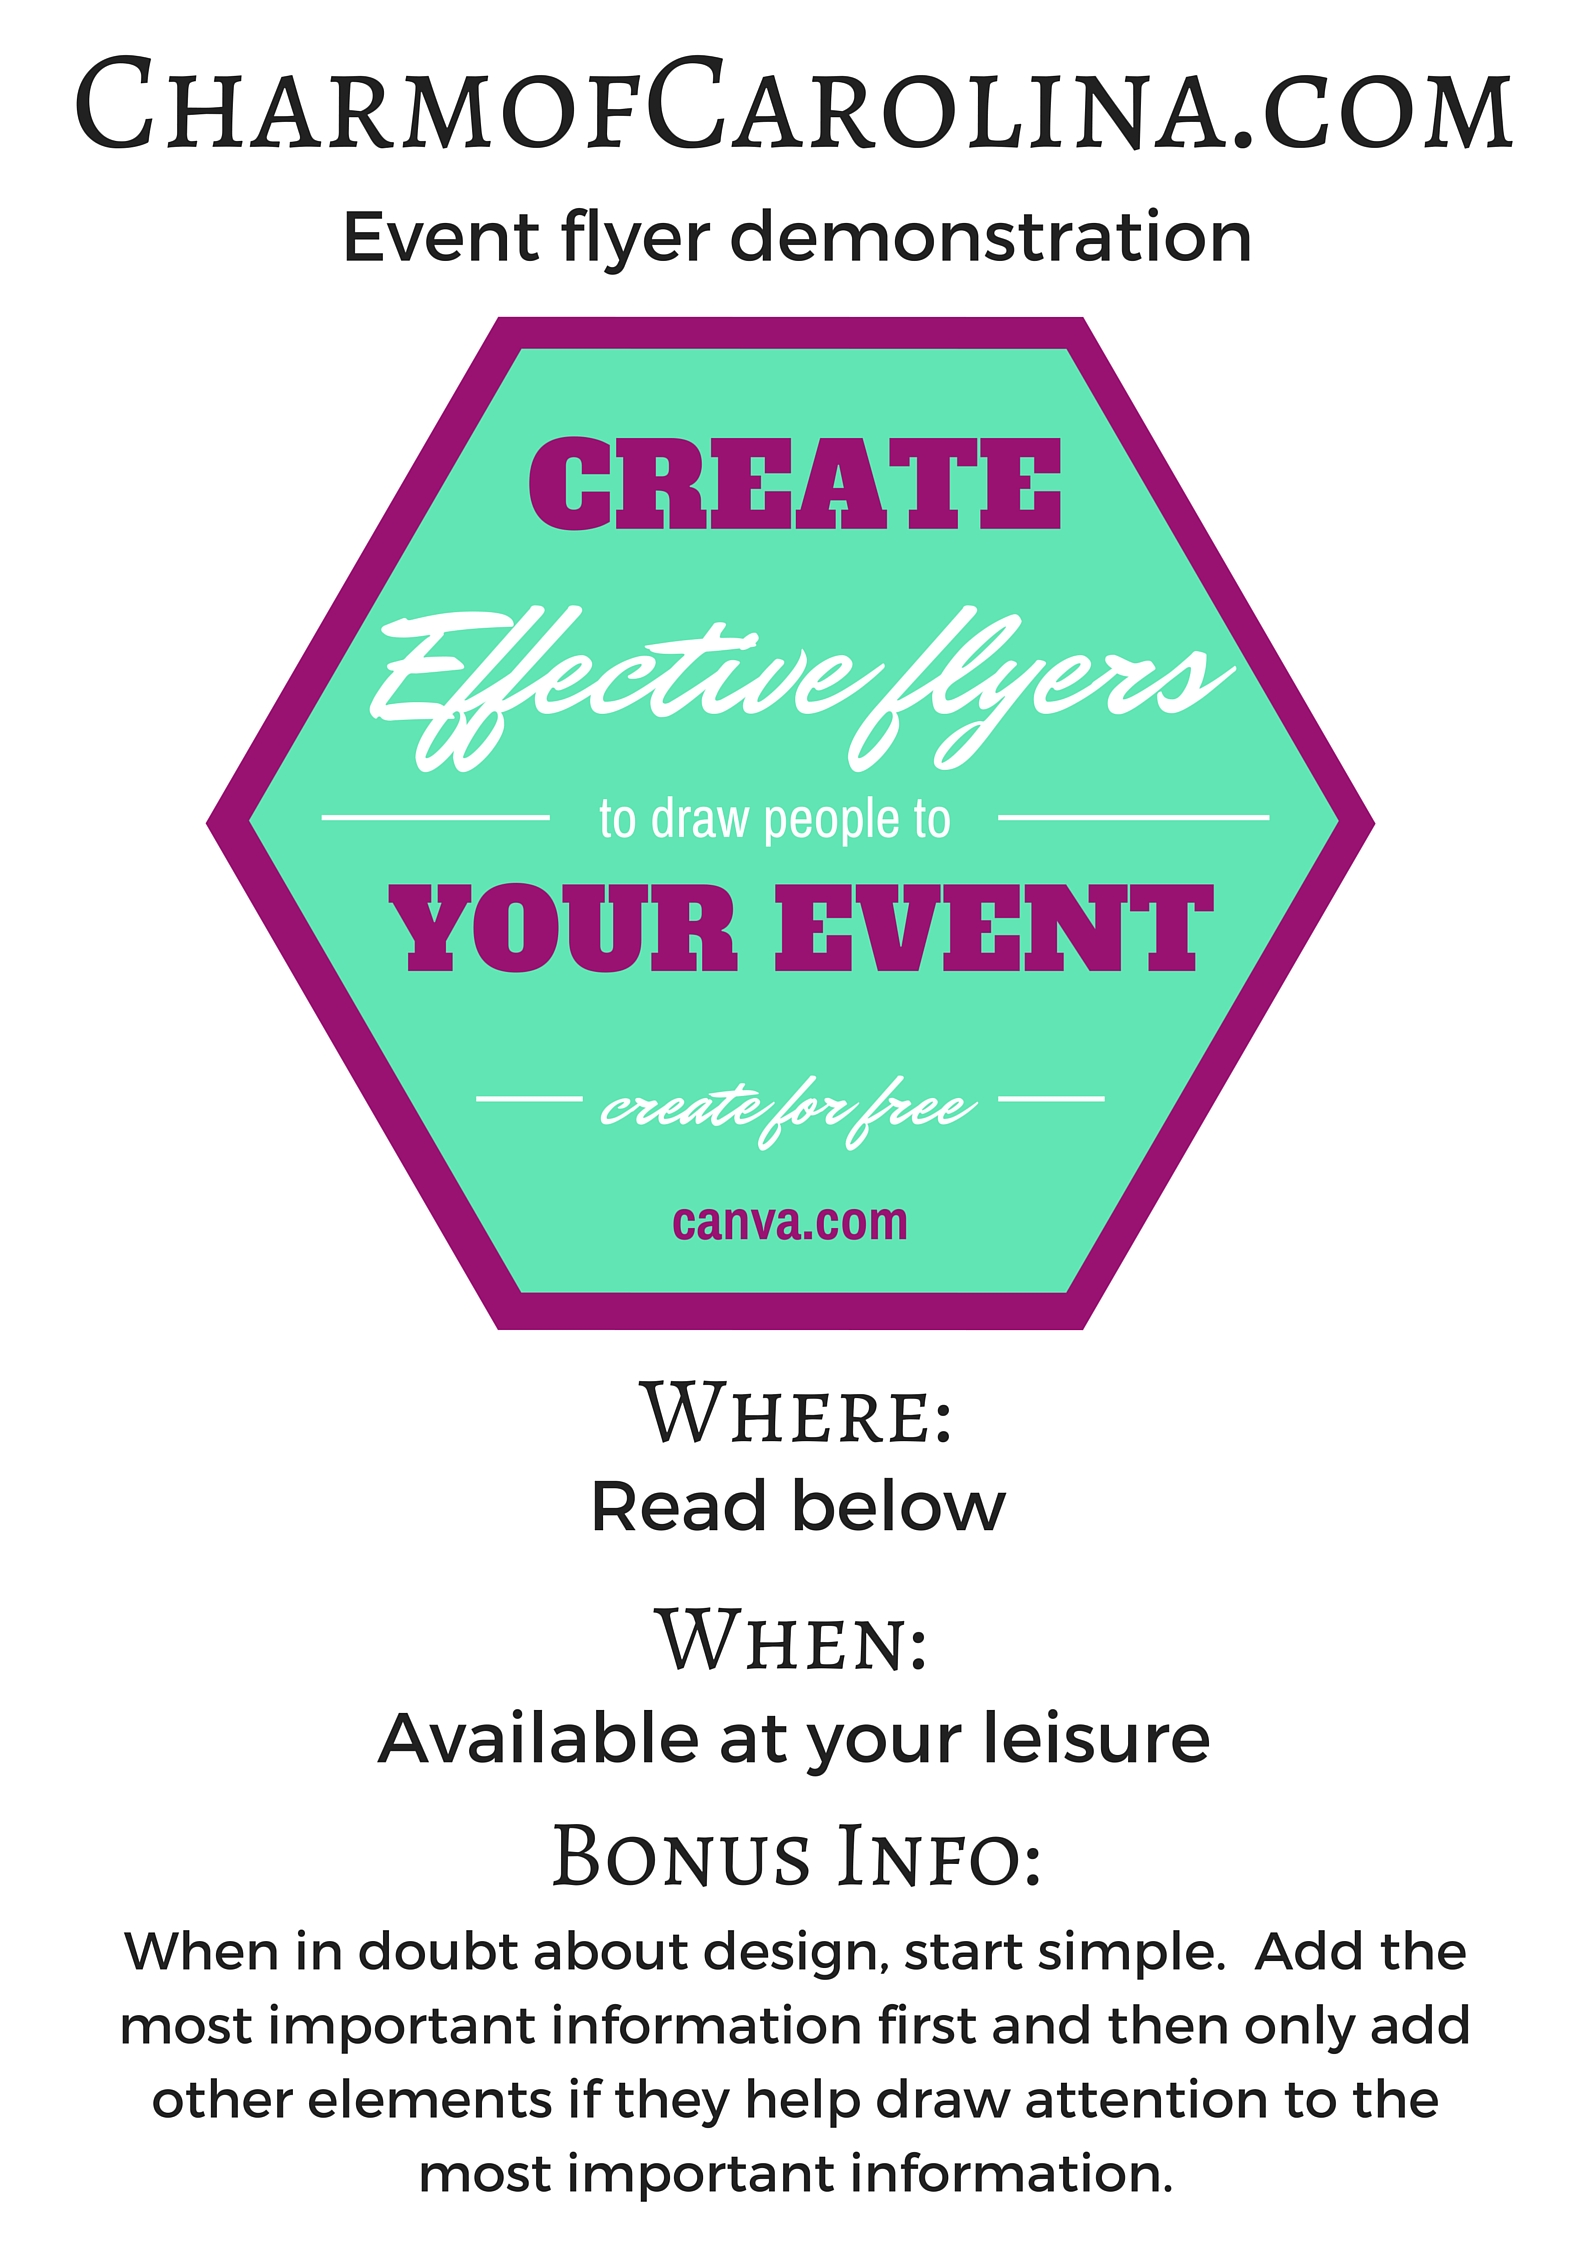 promoting your event flyers charm of carolina